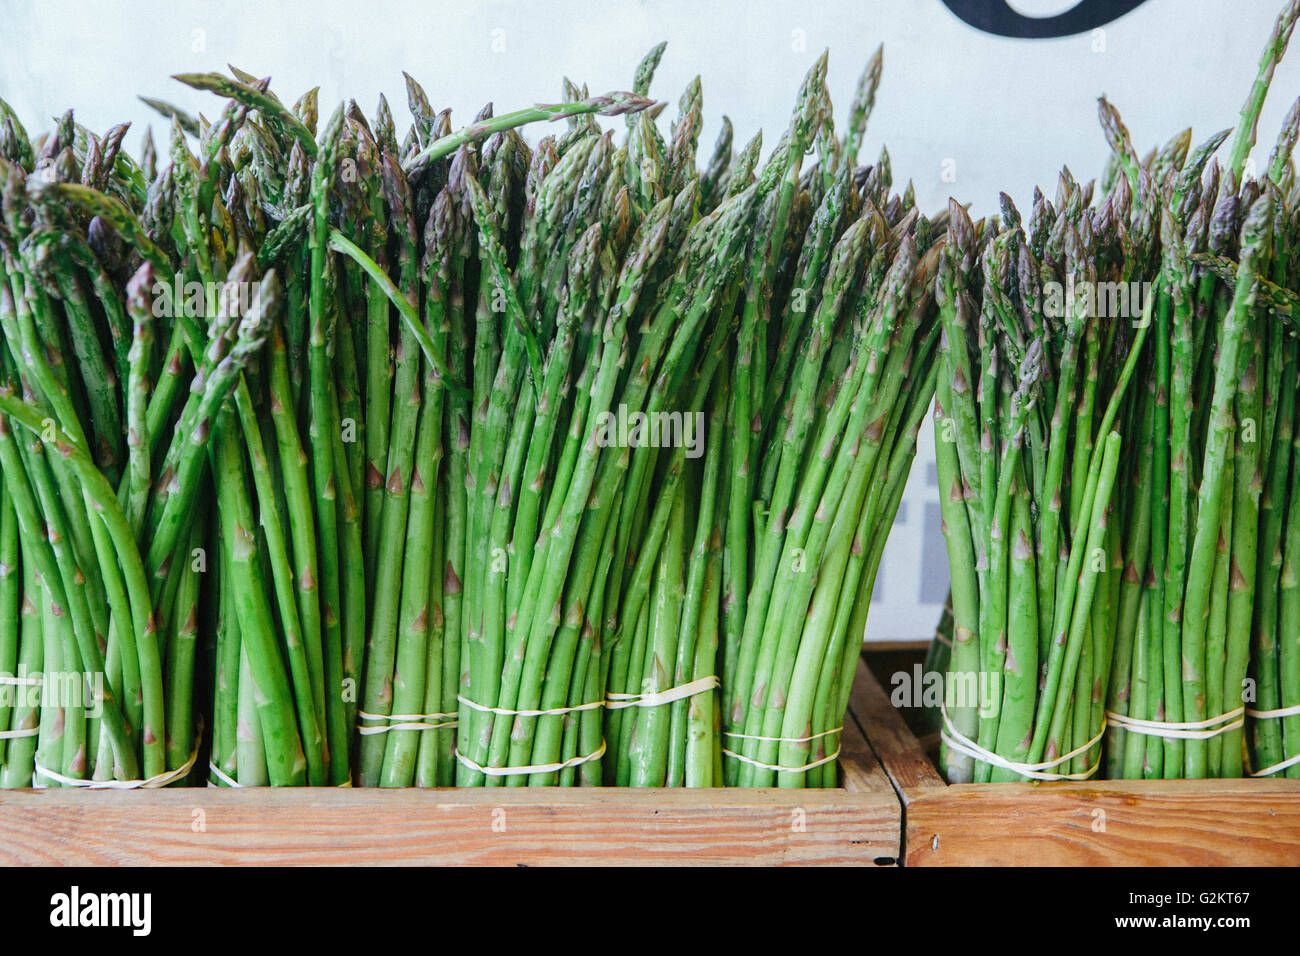 Bunches of Asparagus Sprigs Standing Upright - Stock Image